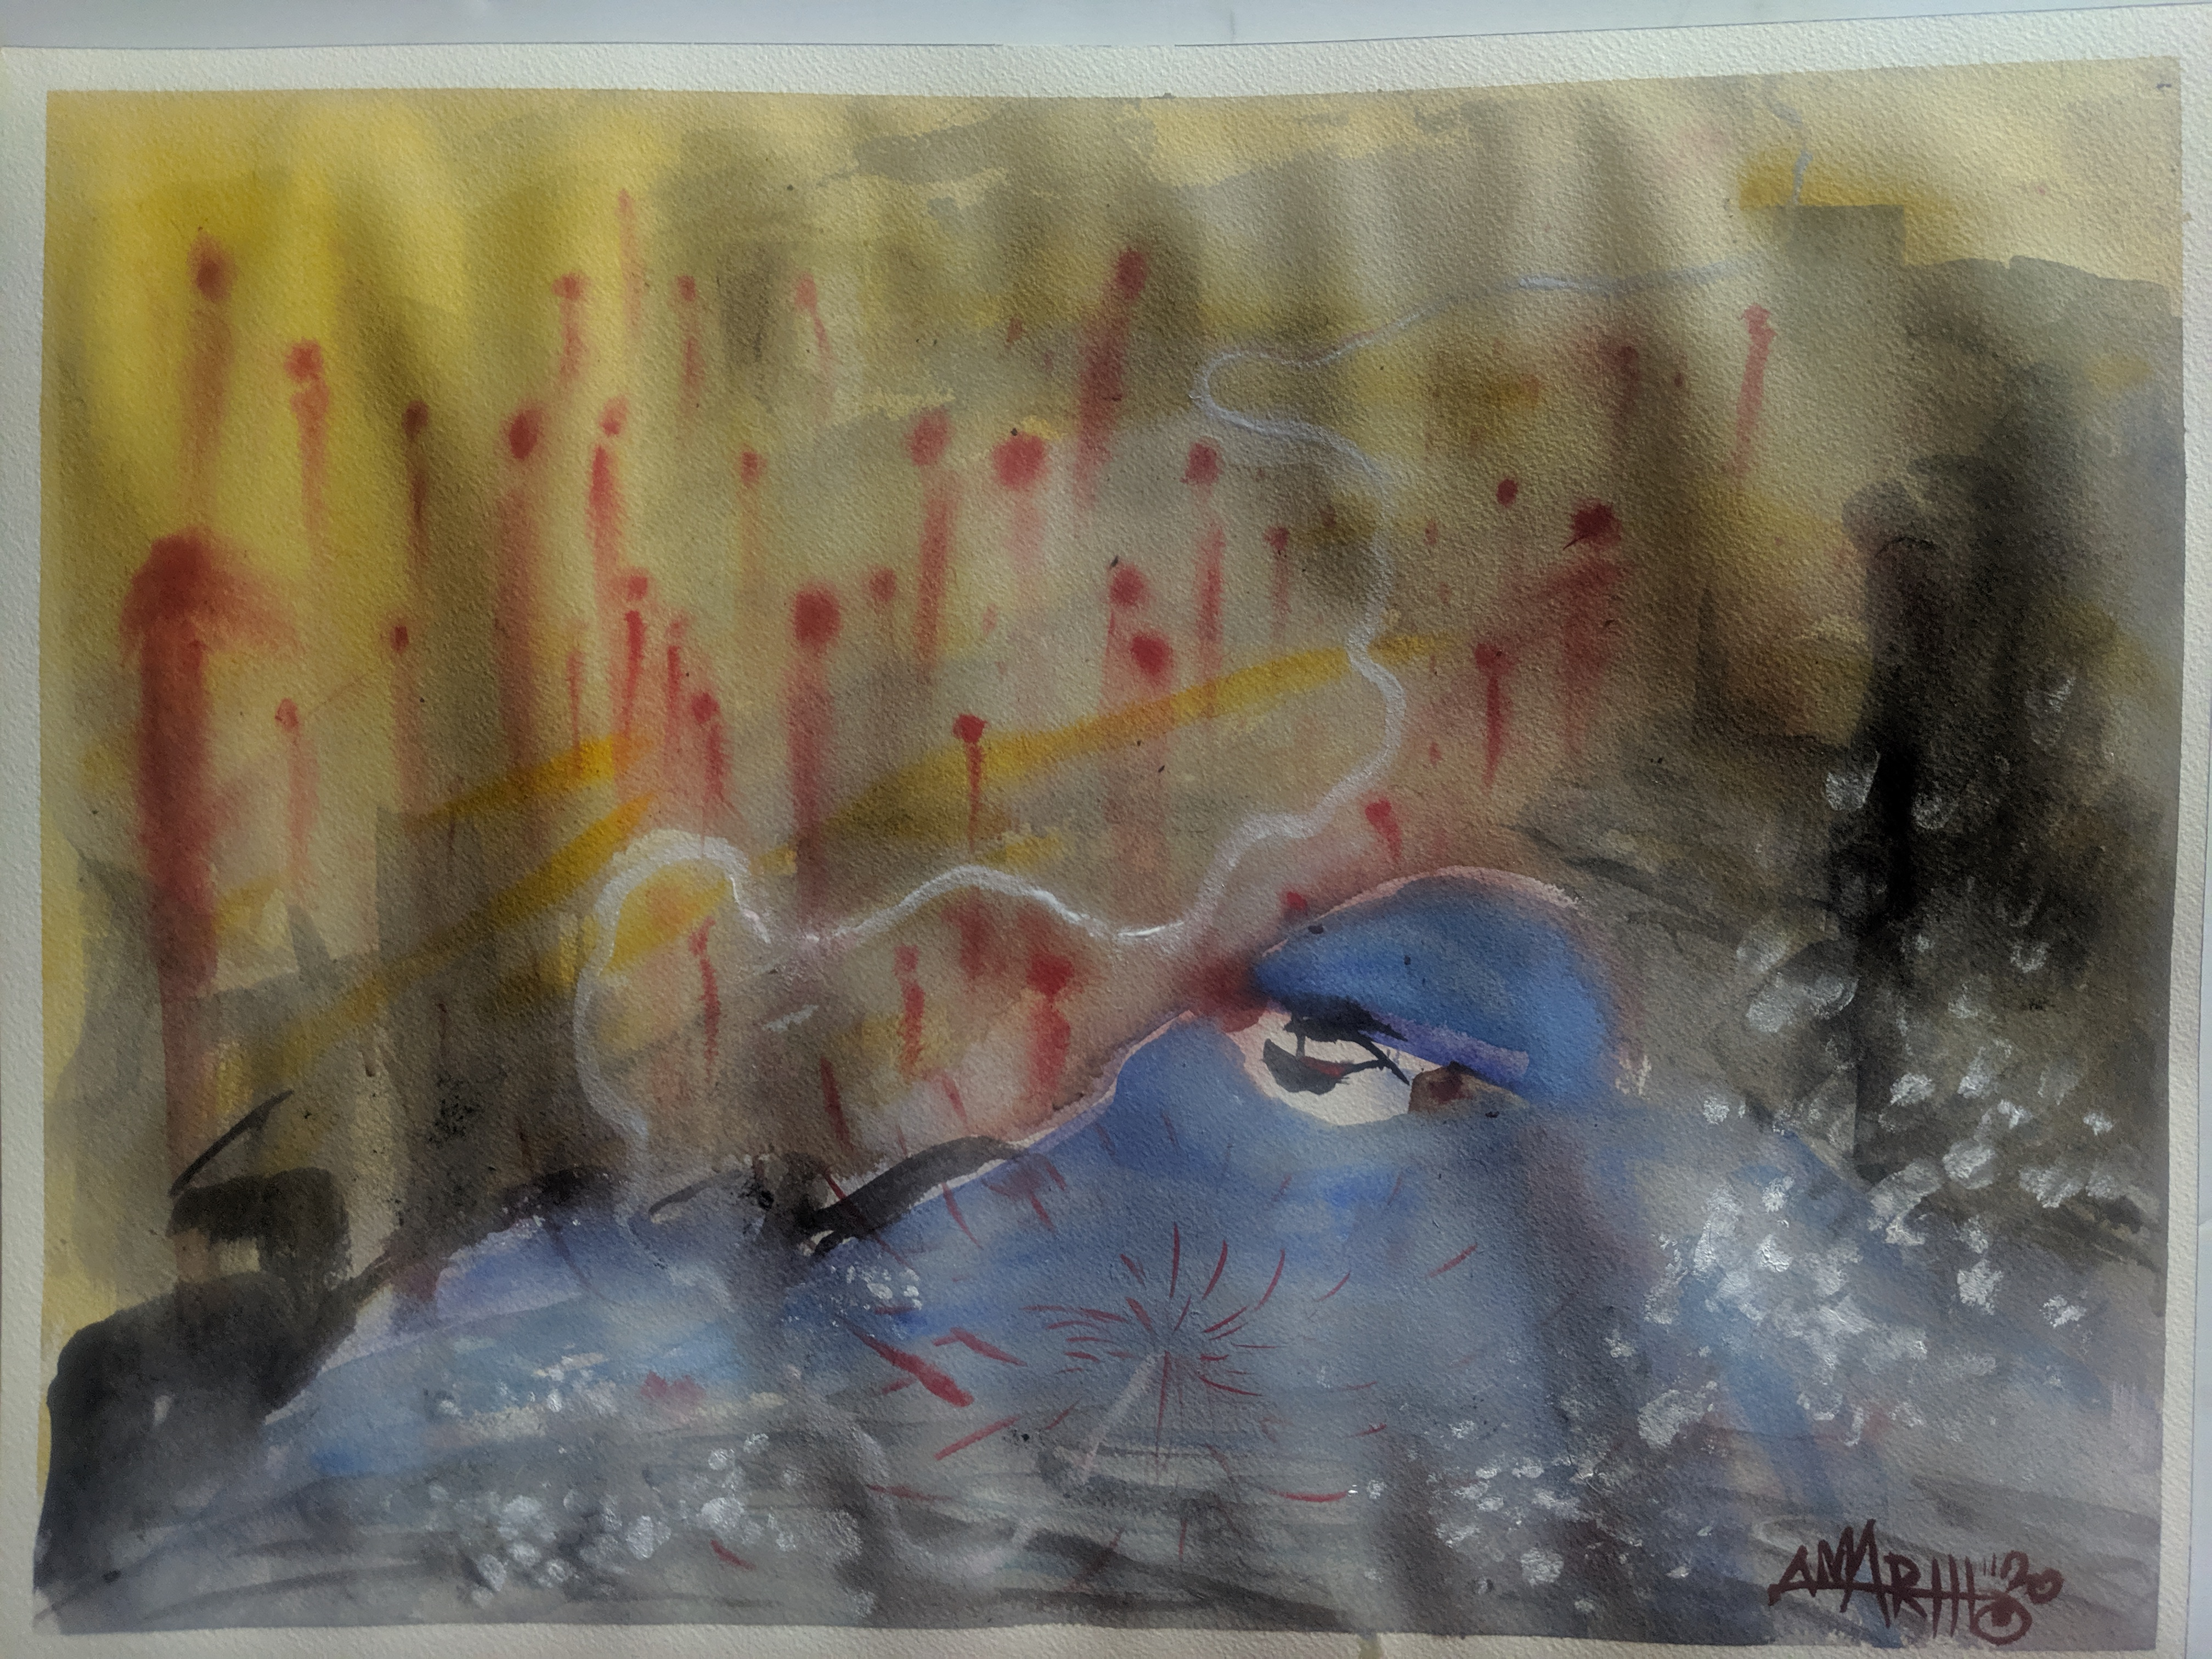 "no. 3 - Iran (quarantine paintings, 2020)  watercolor, oil, gesso on arches paper, 18x24""  dedicated for Dr. Shirin Rouhani (unknown- 3/19/20)  ""She treated patients at Masih Daneshvari Hospital in Tehran while receiving IV therapy, because there were not enough doctors. Hospitals are faced with a lack of protective gear including medical gowns, N95 masks, gloves, and disinfectants.""  -Javad Tavakoli   "" Tell medècin sans frontiers that we do not need hospitals established by foreigners"". -Health Minister, Alireza Vahhabzadeh."